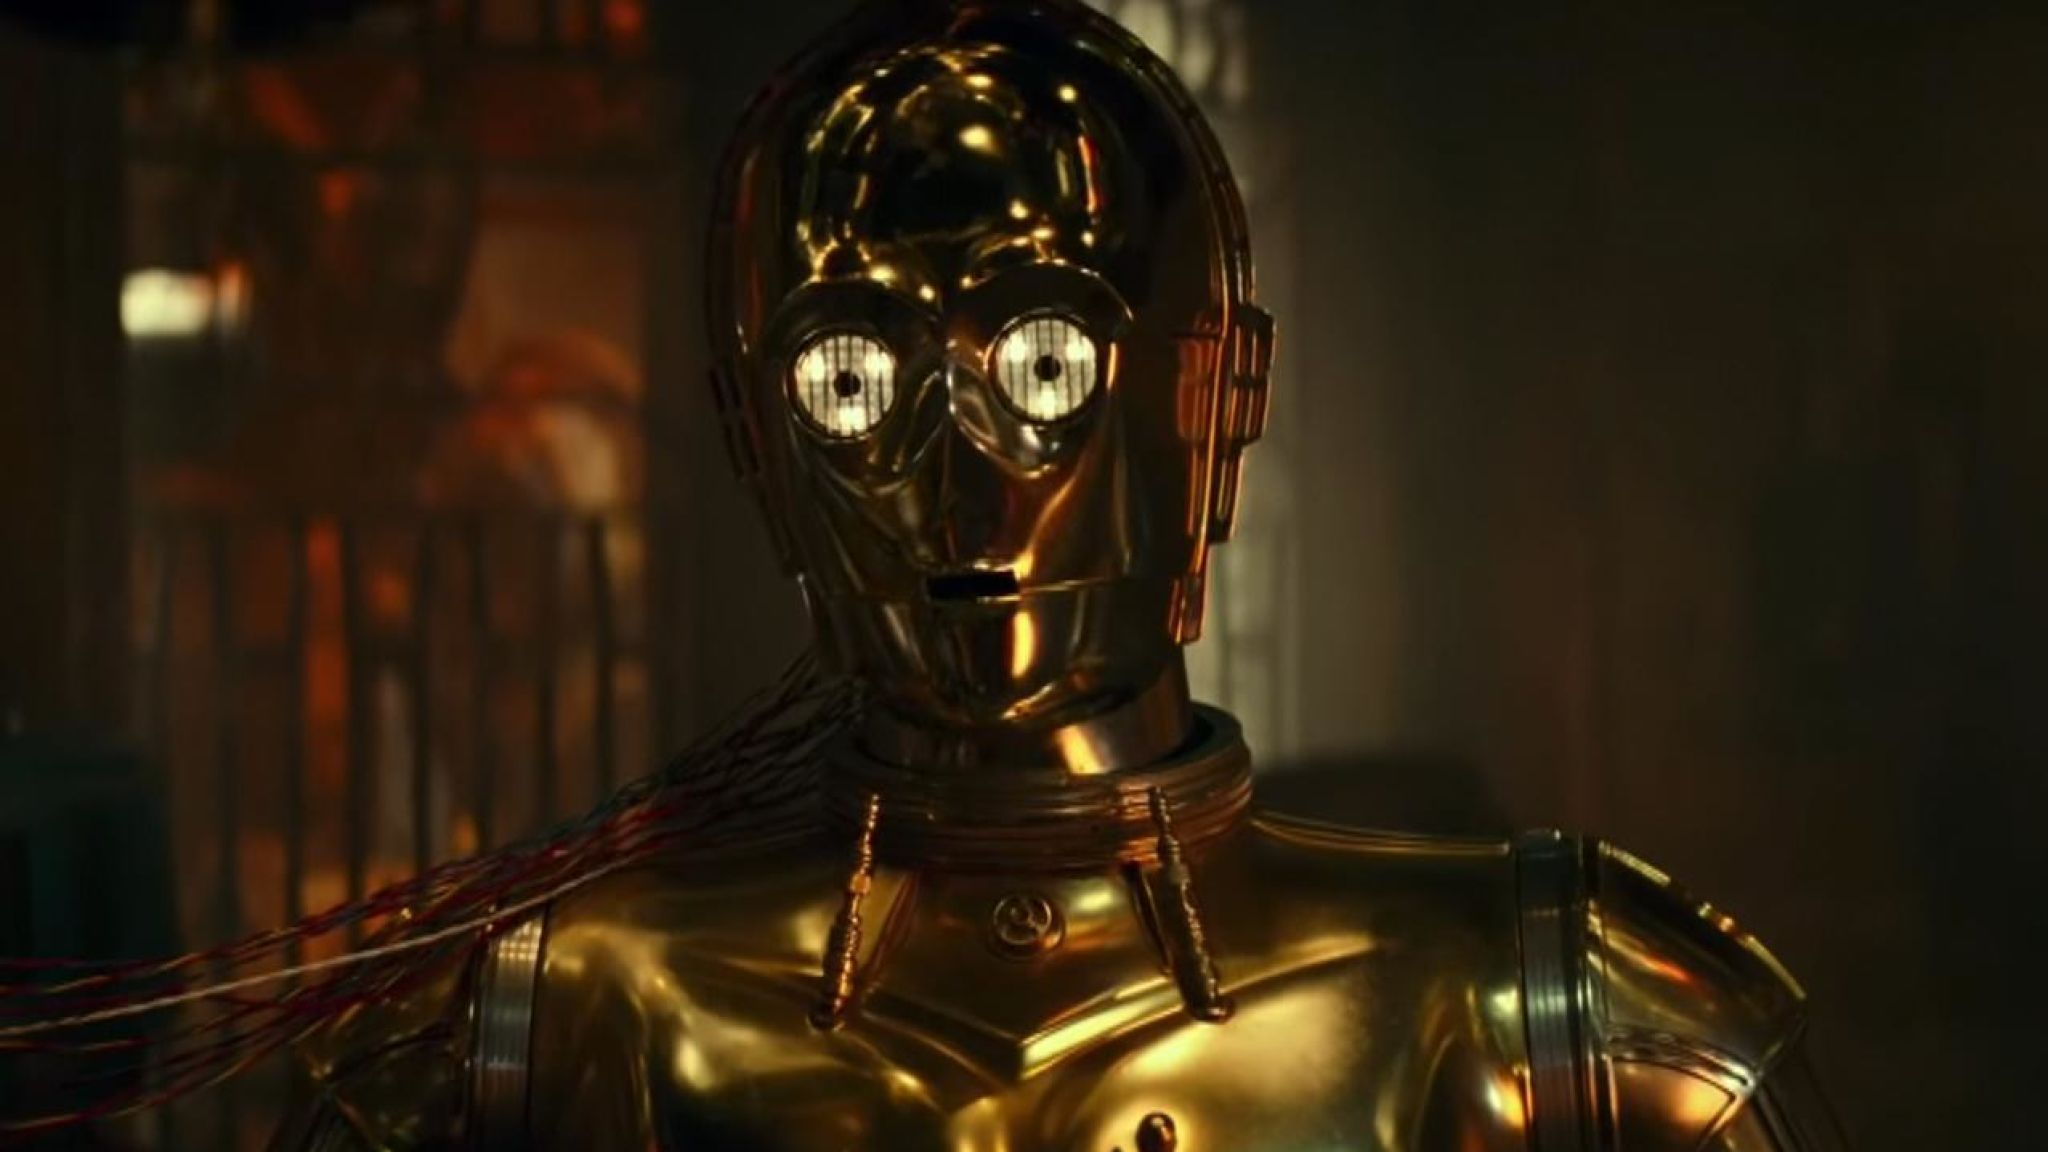 C-3PO suggests he will meet his end in the upcoming film